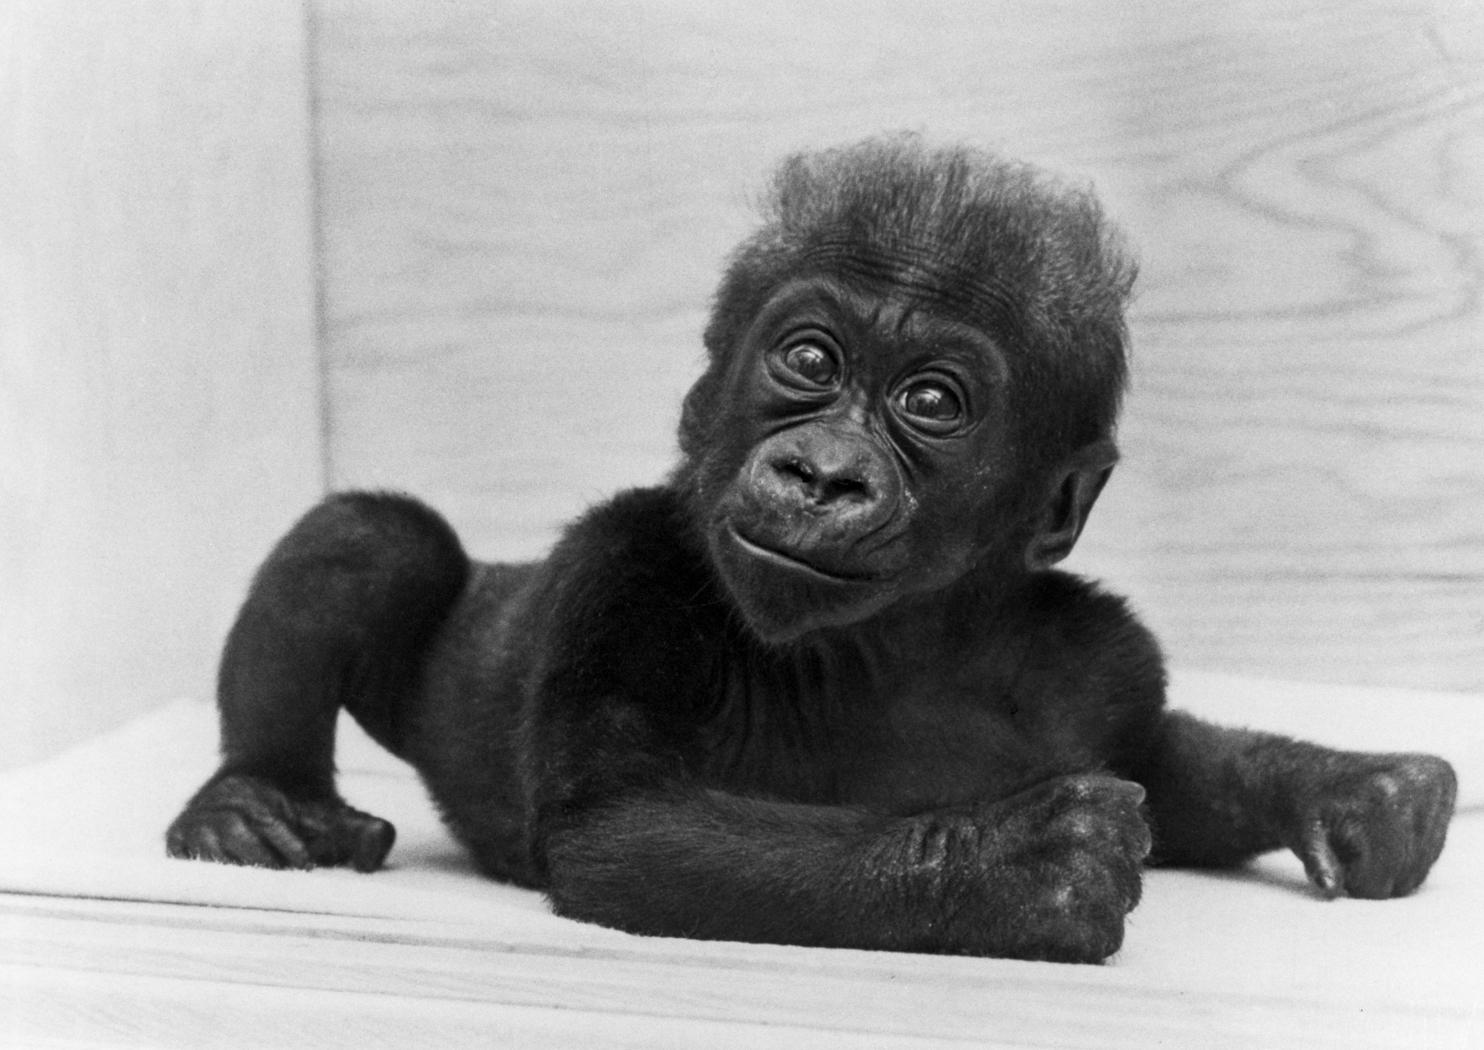 Gorilla (Colo) 1957 445 - Columbus Zoo and Aquarium